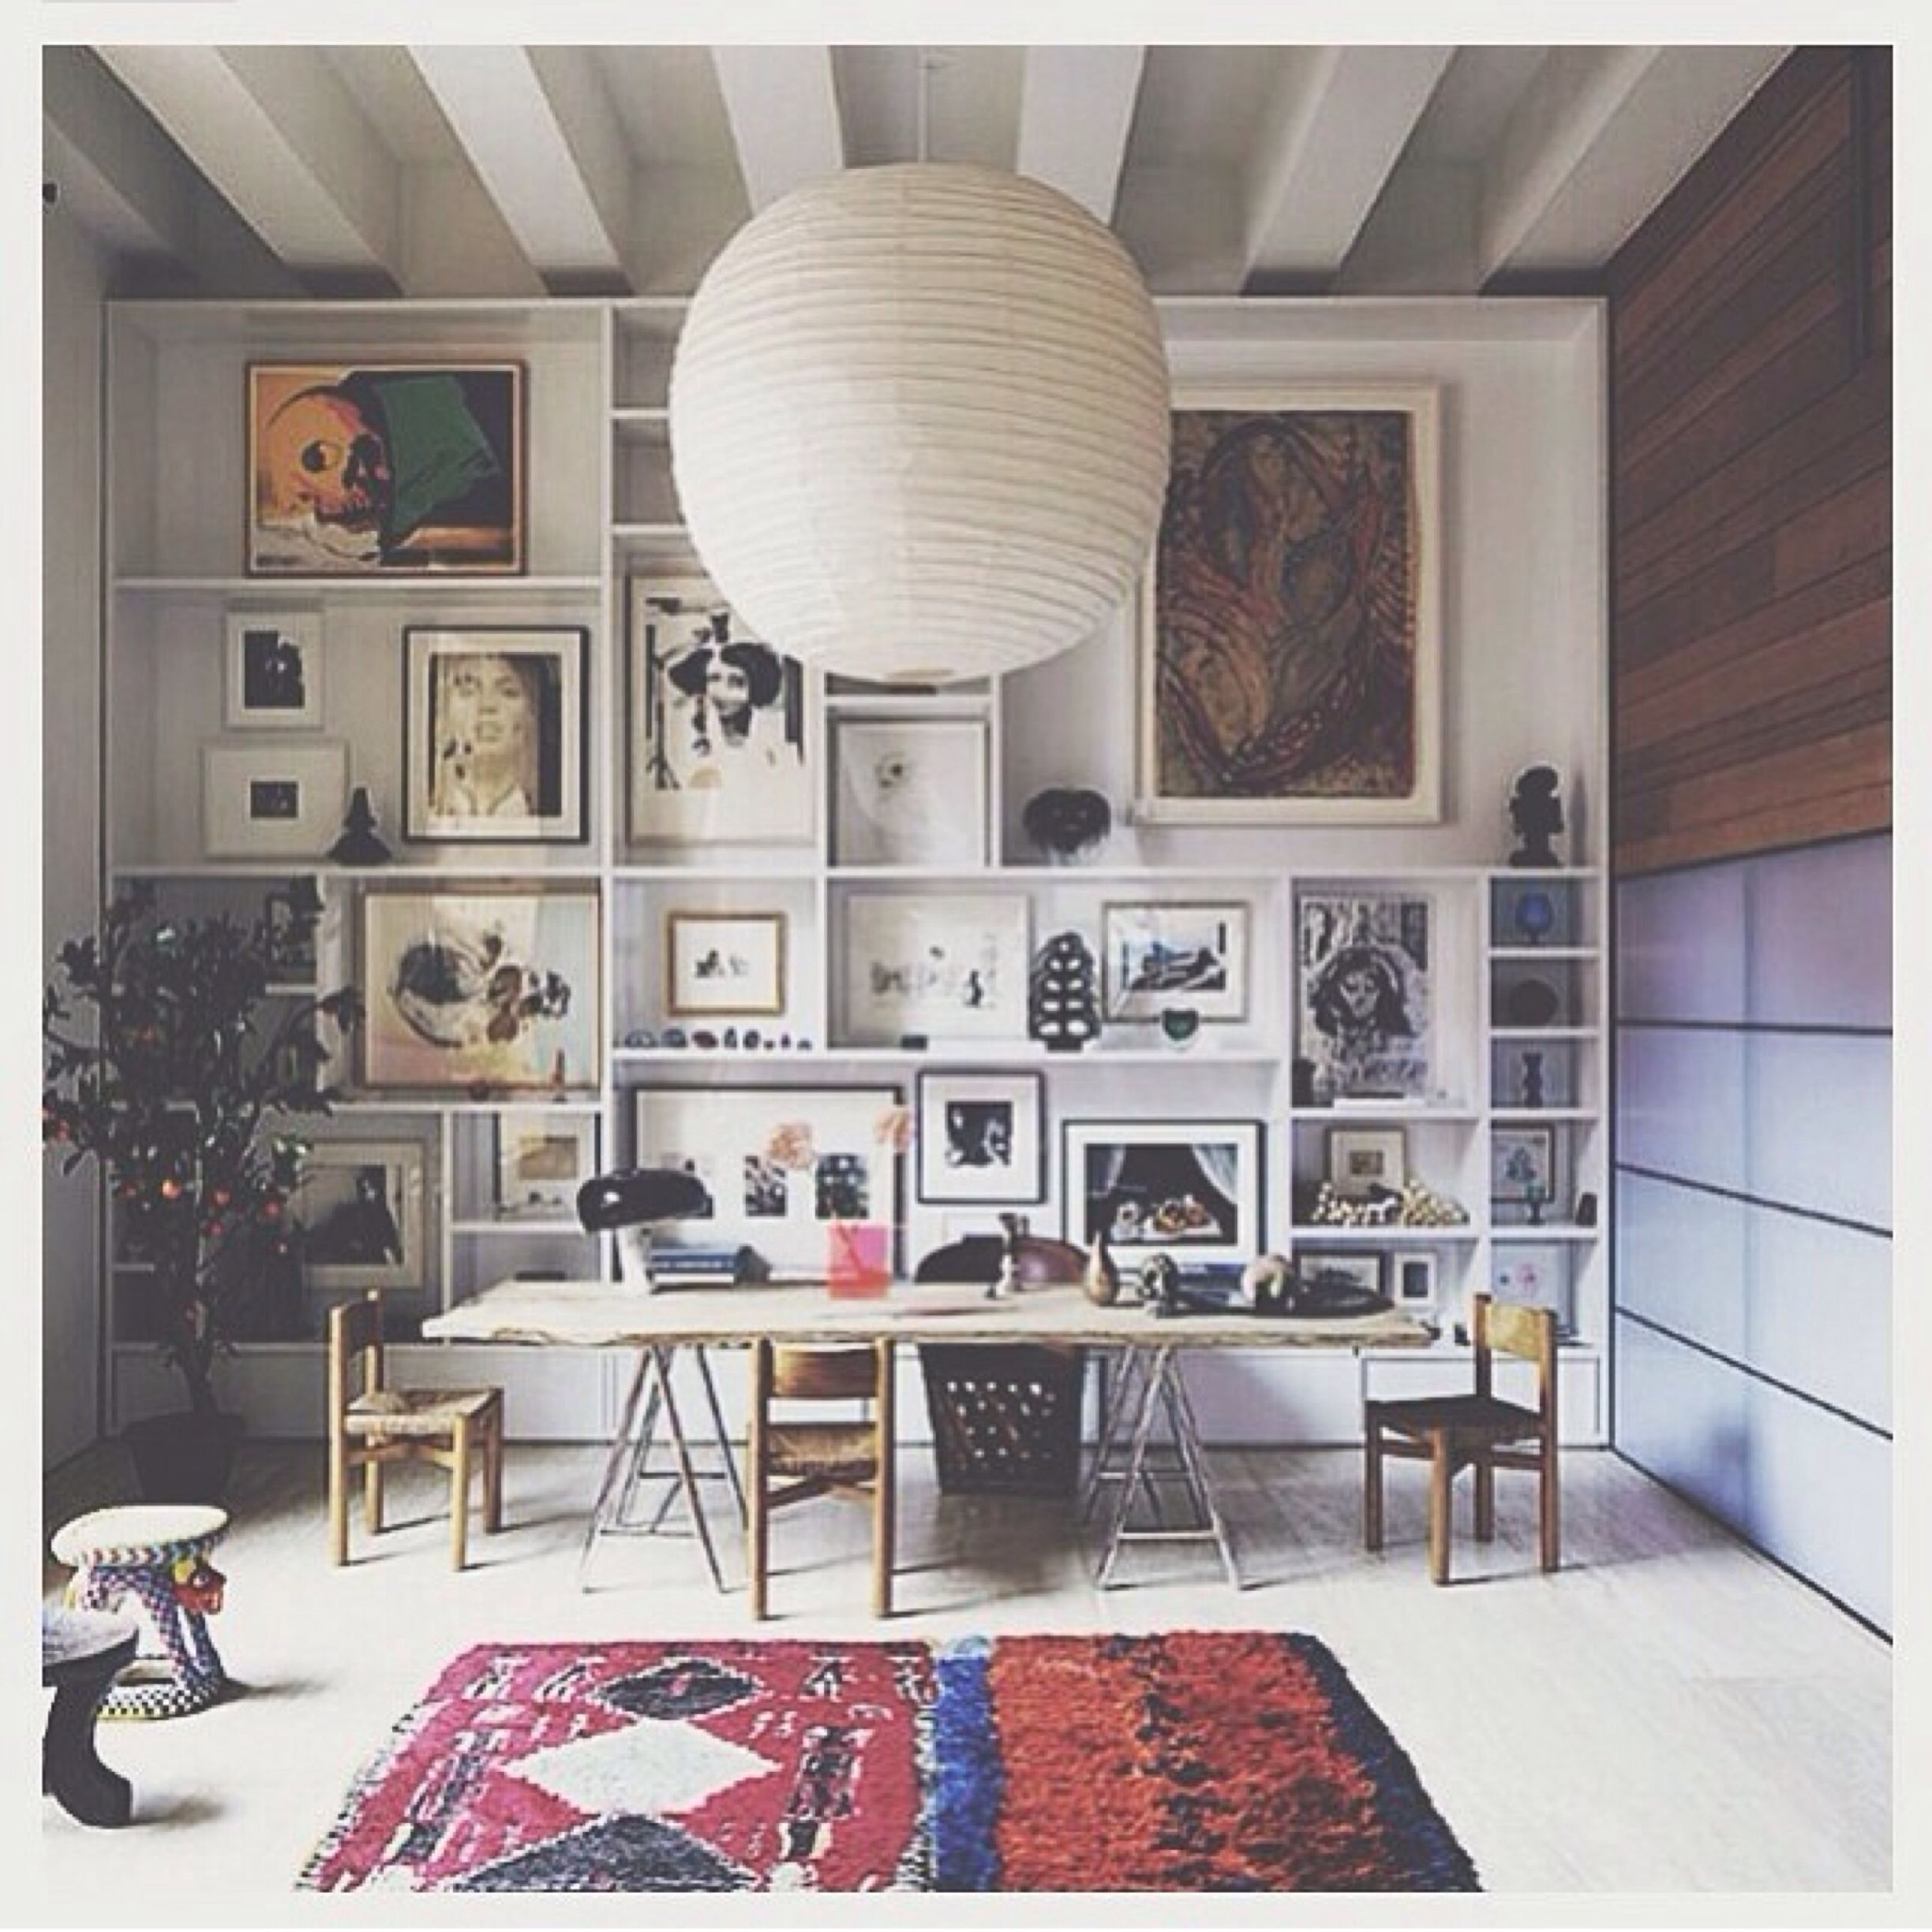 Creative ideas for home interior what an awesome way to display photos paintings u knick knacks